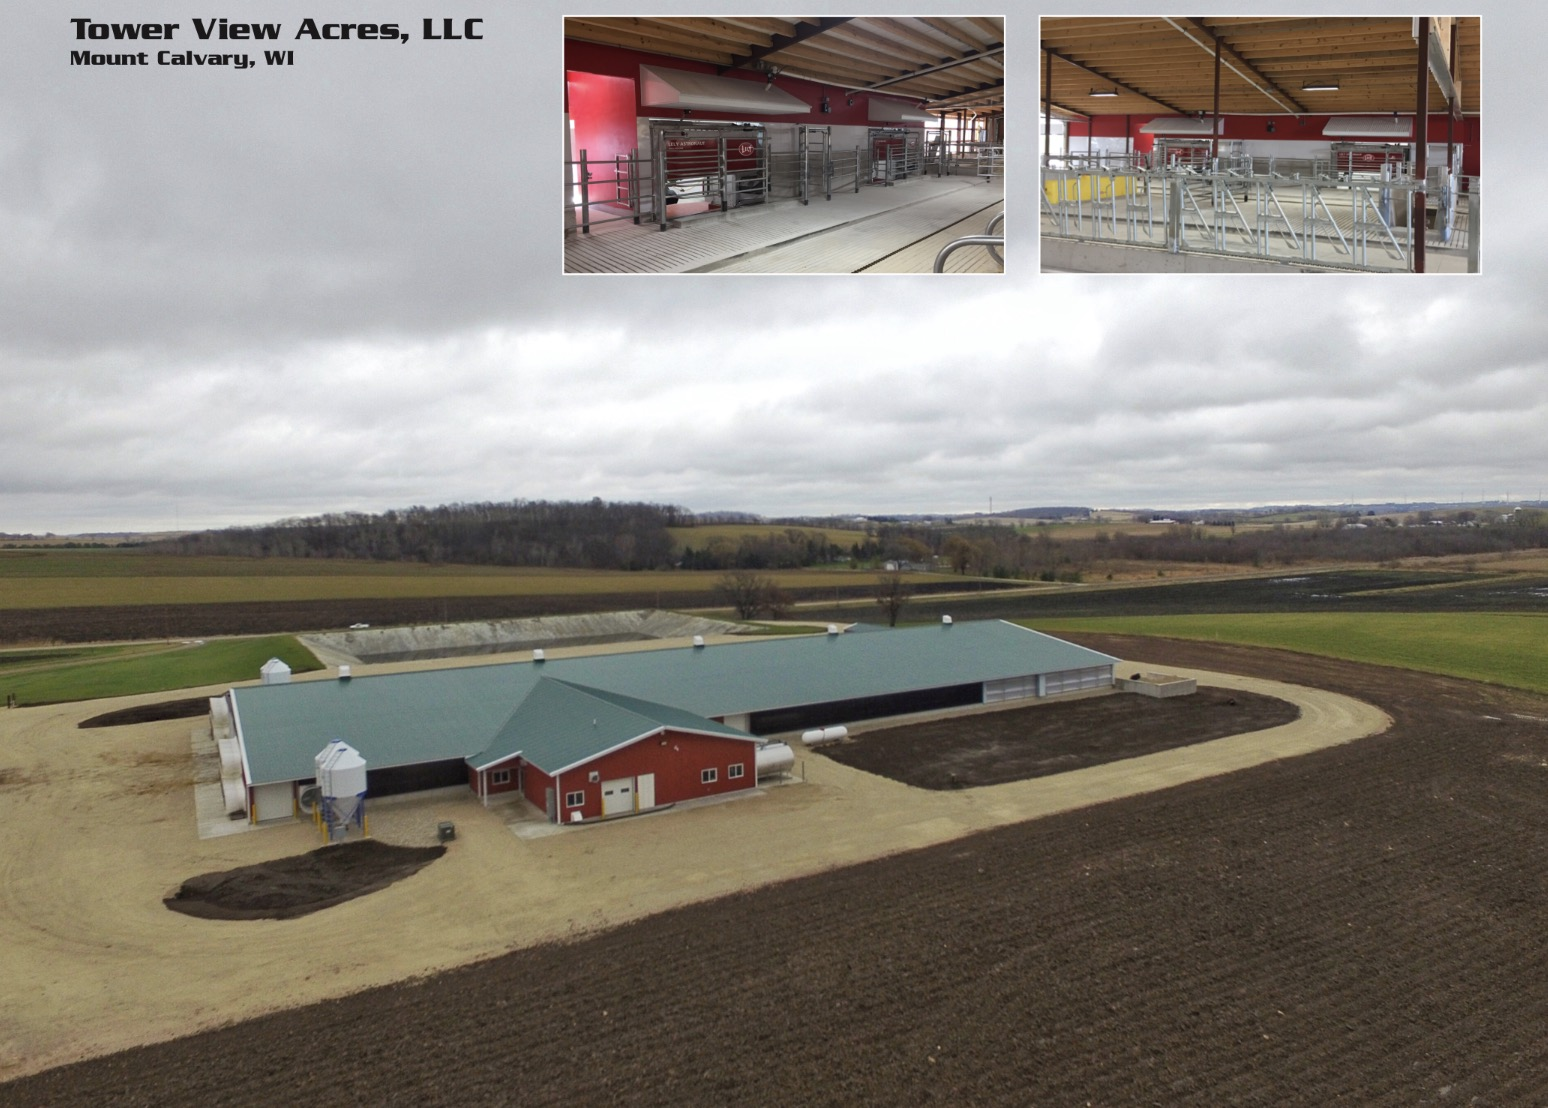 Agricultural Construction:  RobotDairy:  Tower View Acres, Mount Calvary, WI